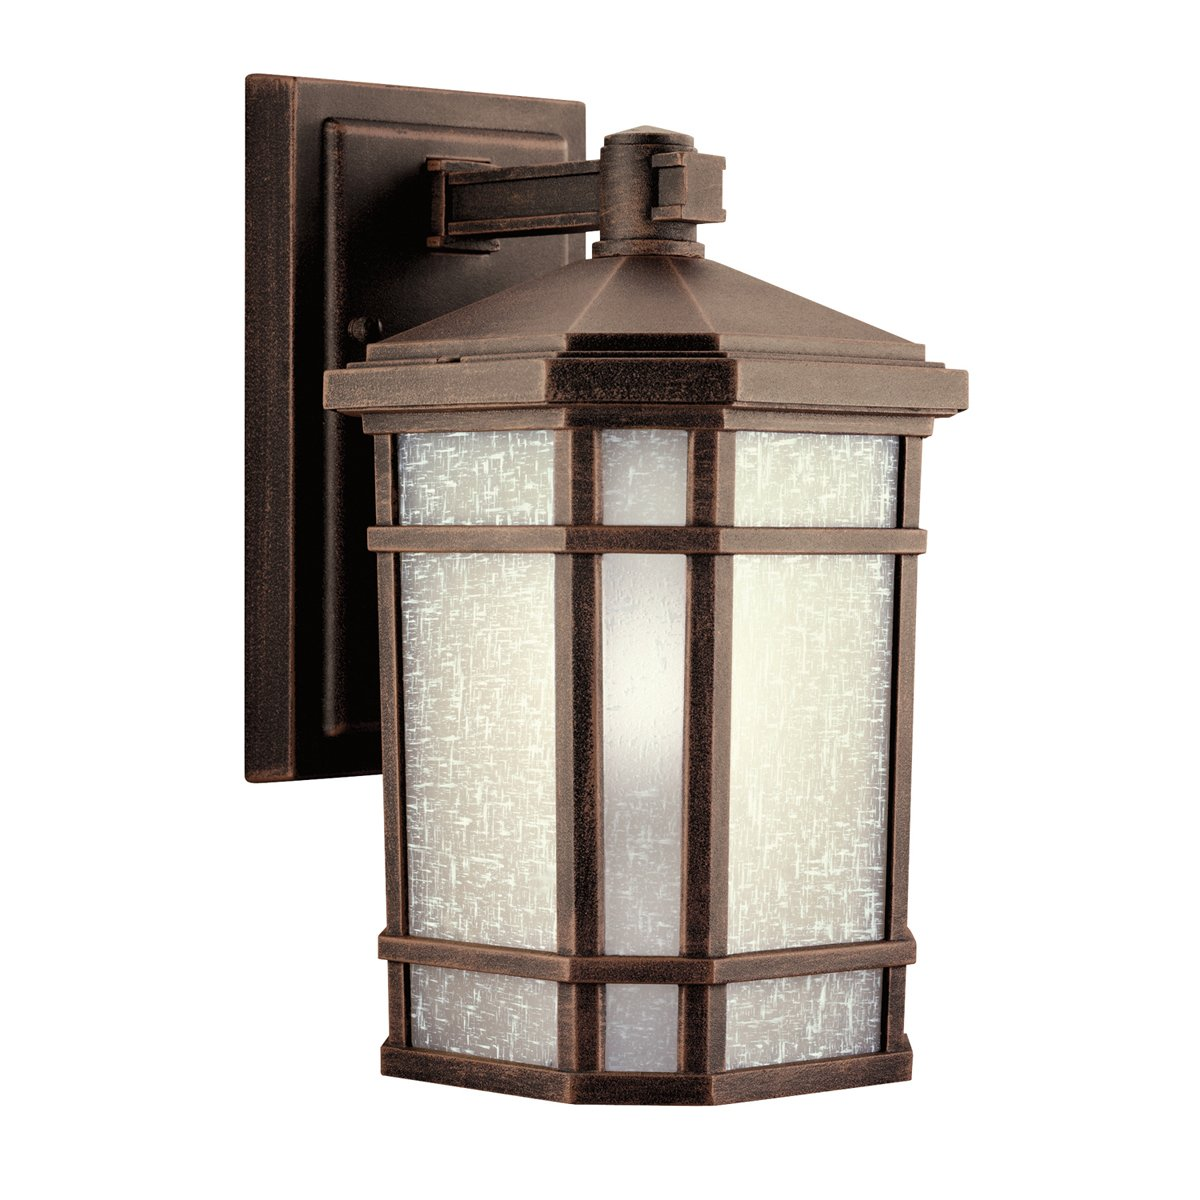 Delightful Kichler 9718PR One Light Outdoor Wall Mount   Wall Porch Lights   Amazon.com Pictures